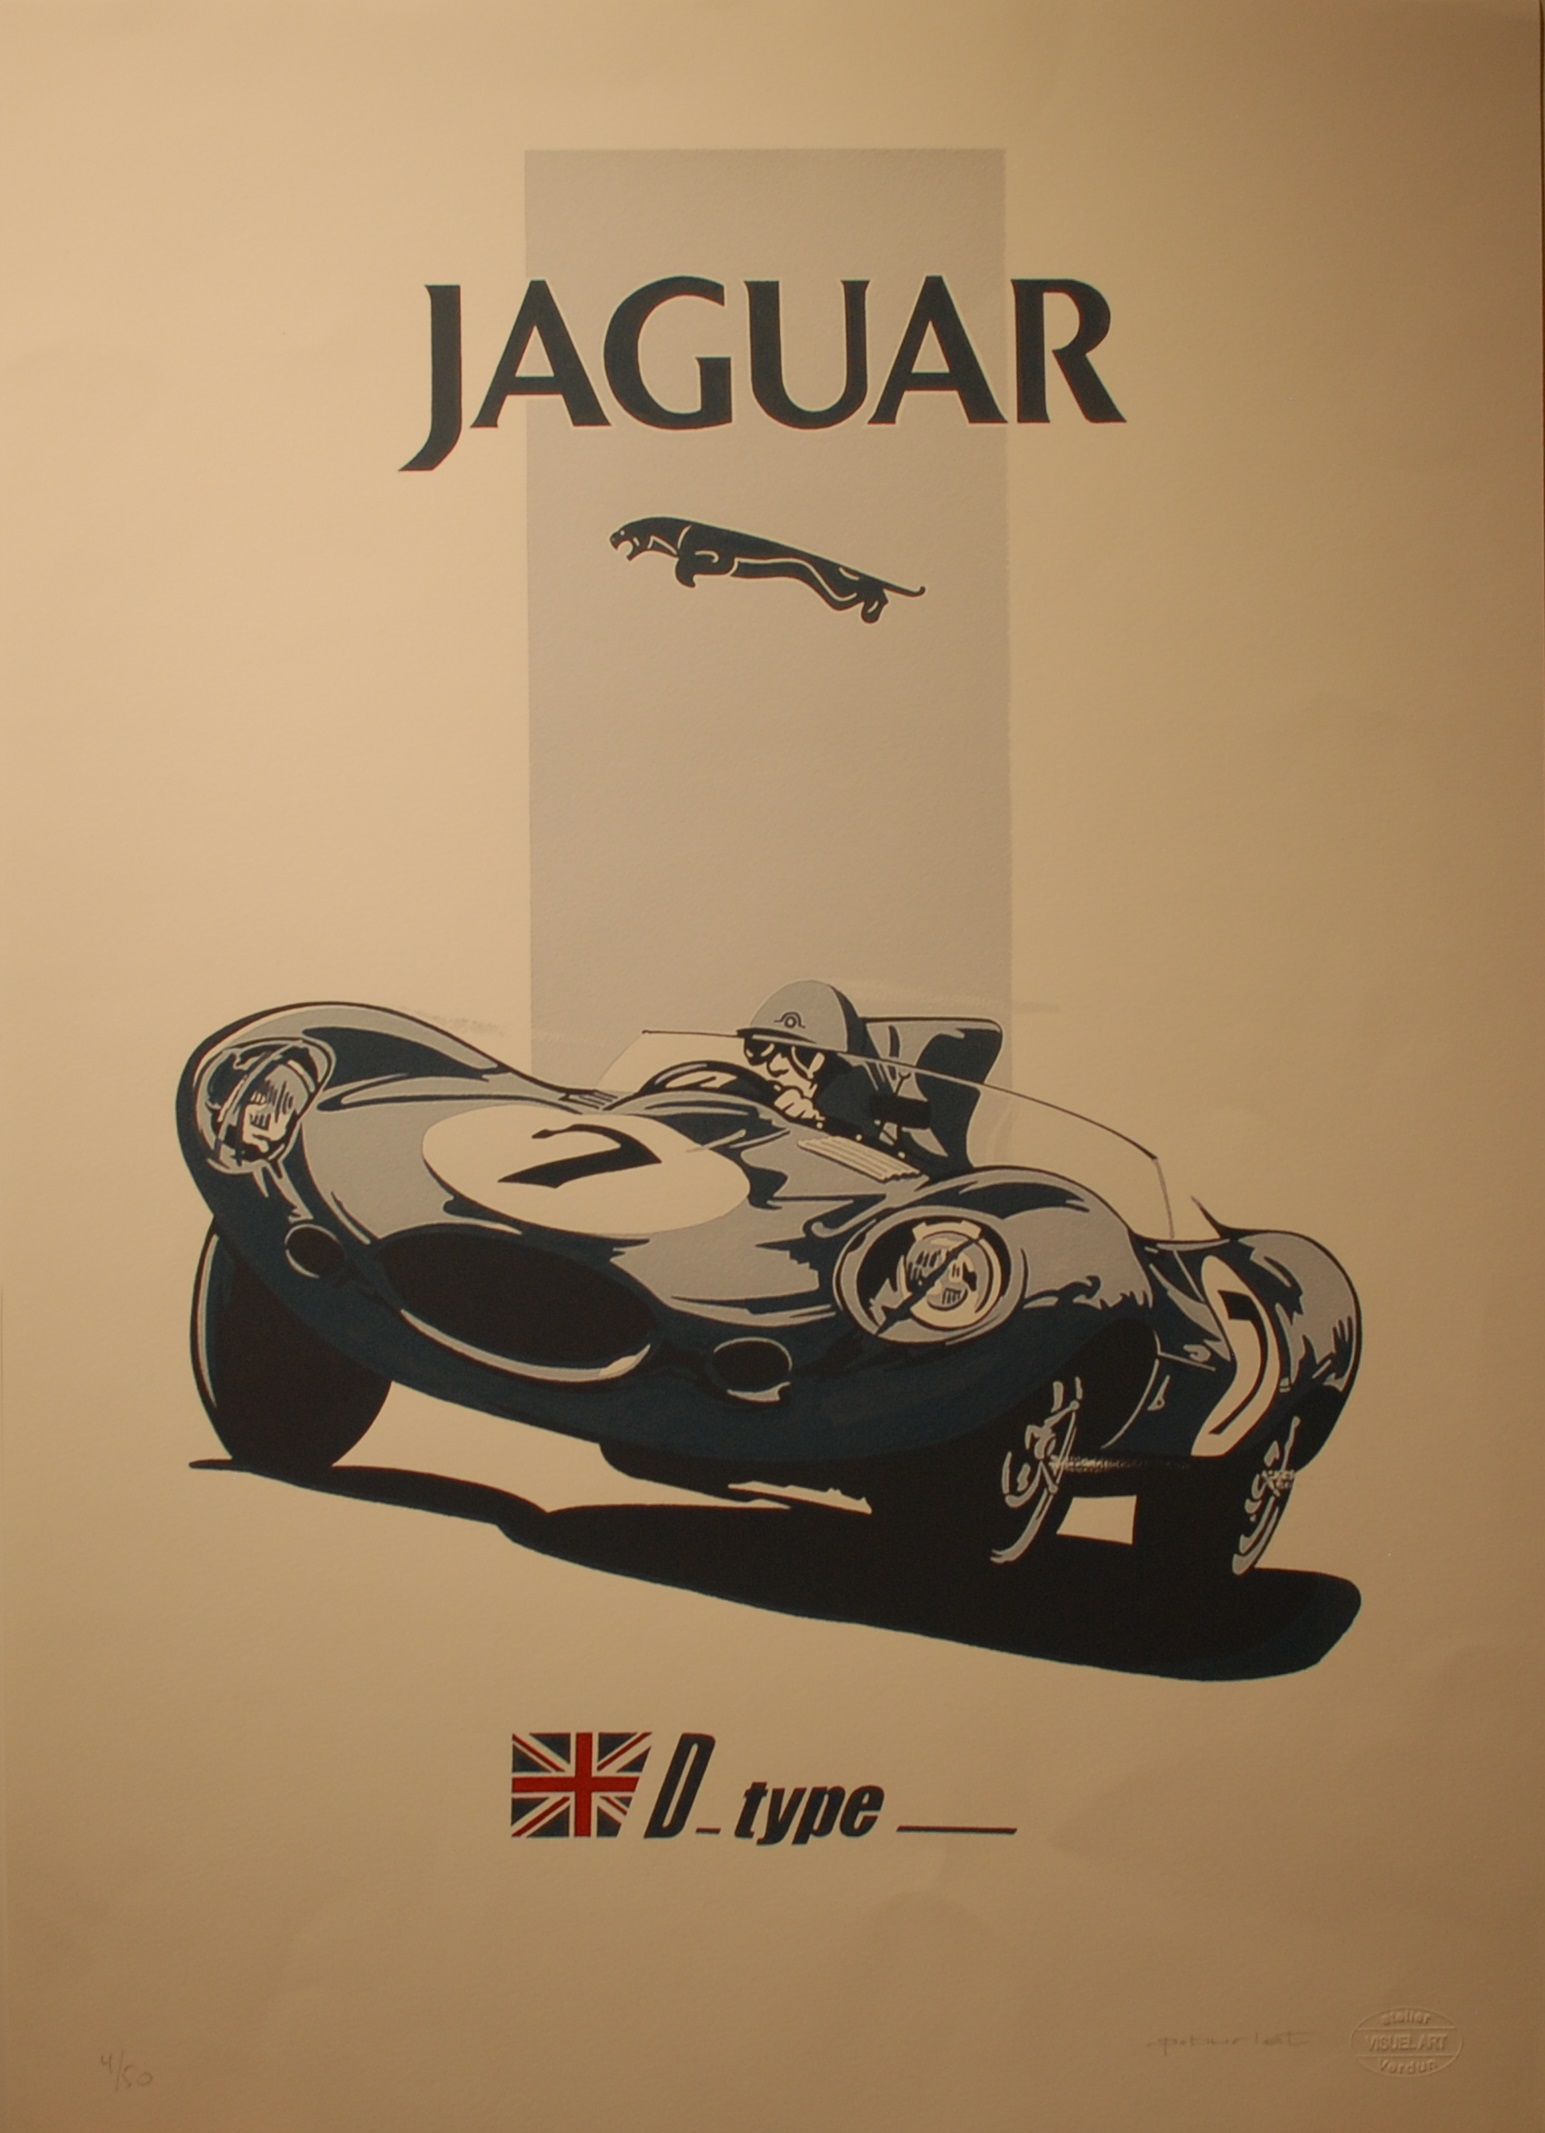 Jaguar D_type